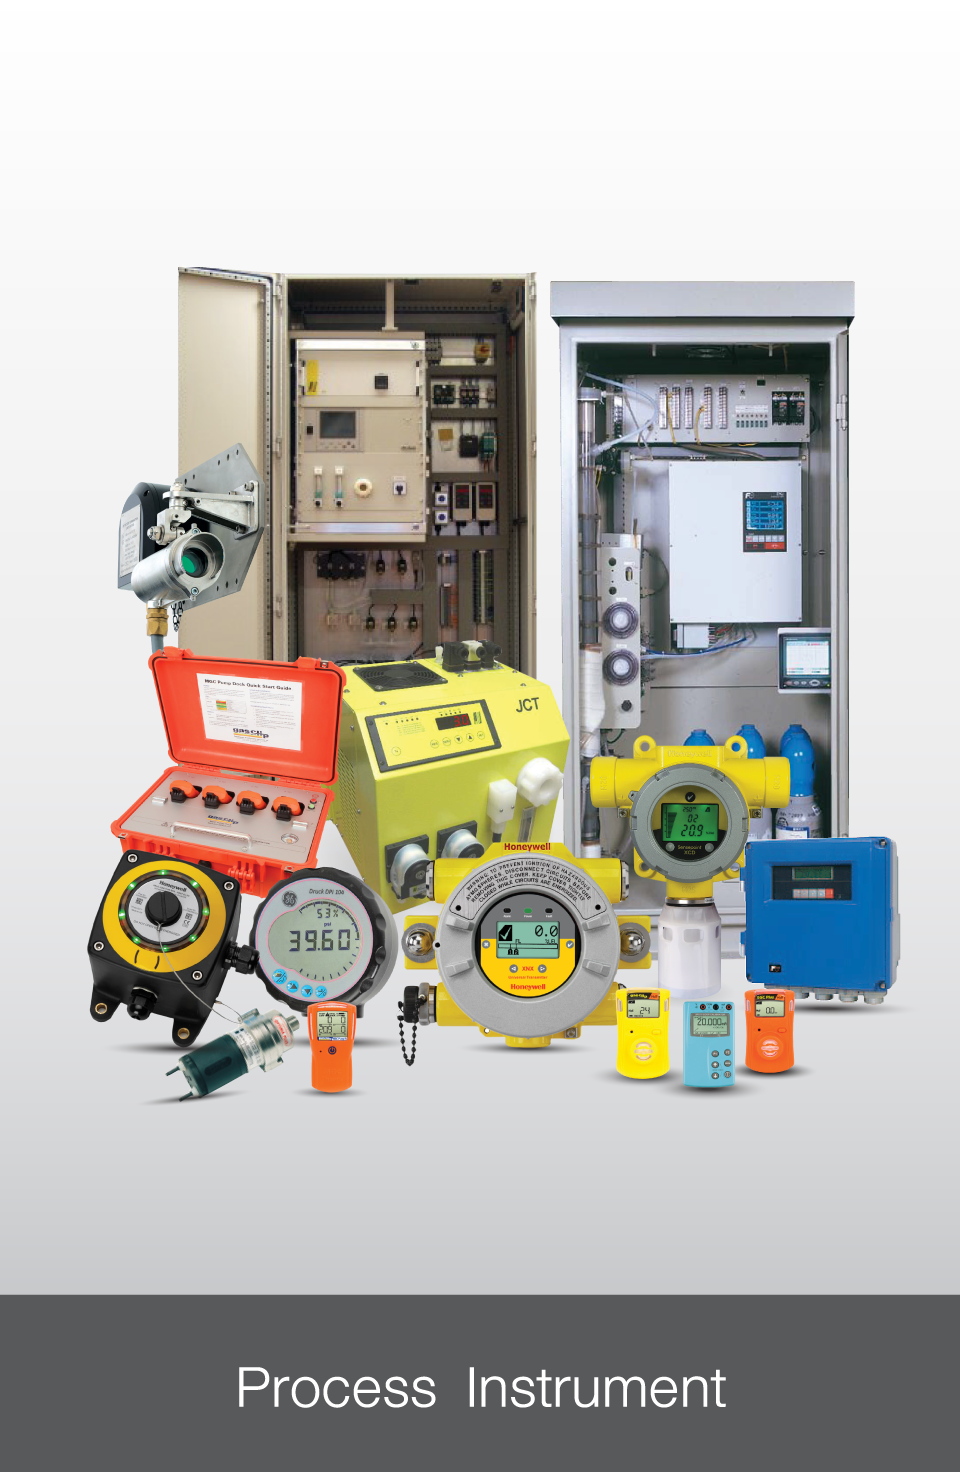 Process Instrument Division